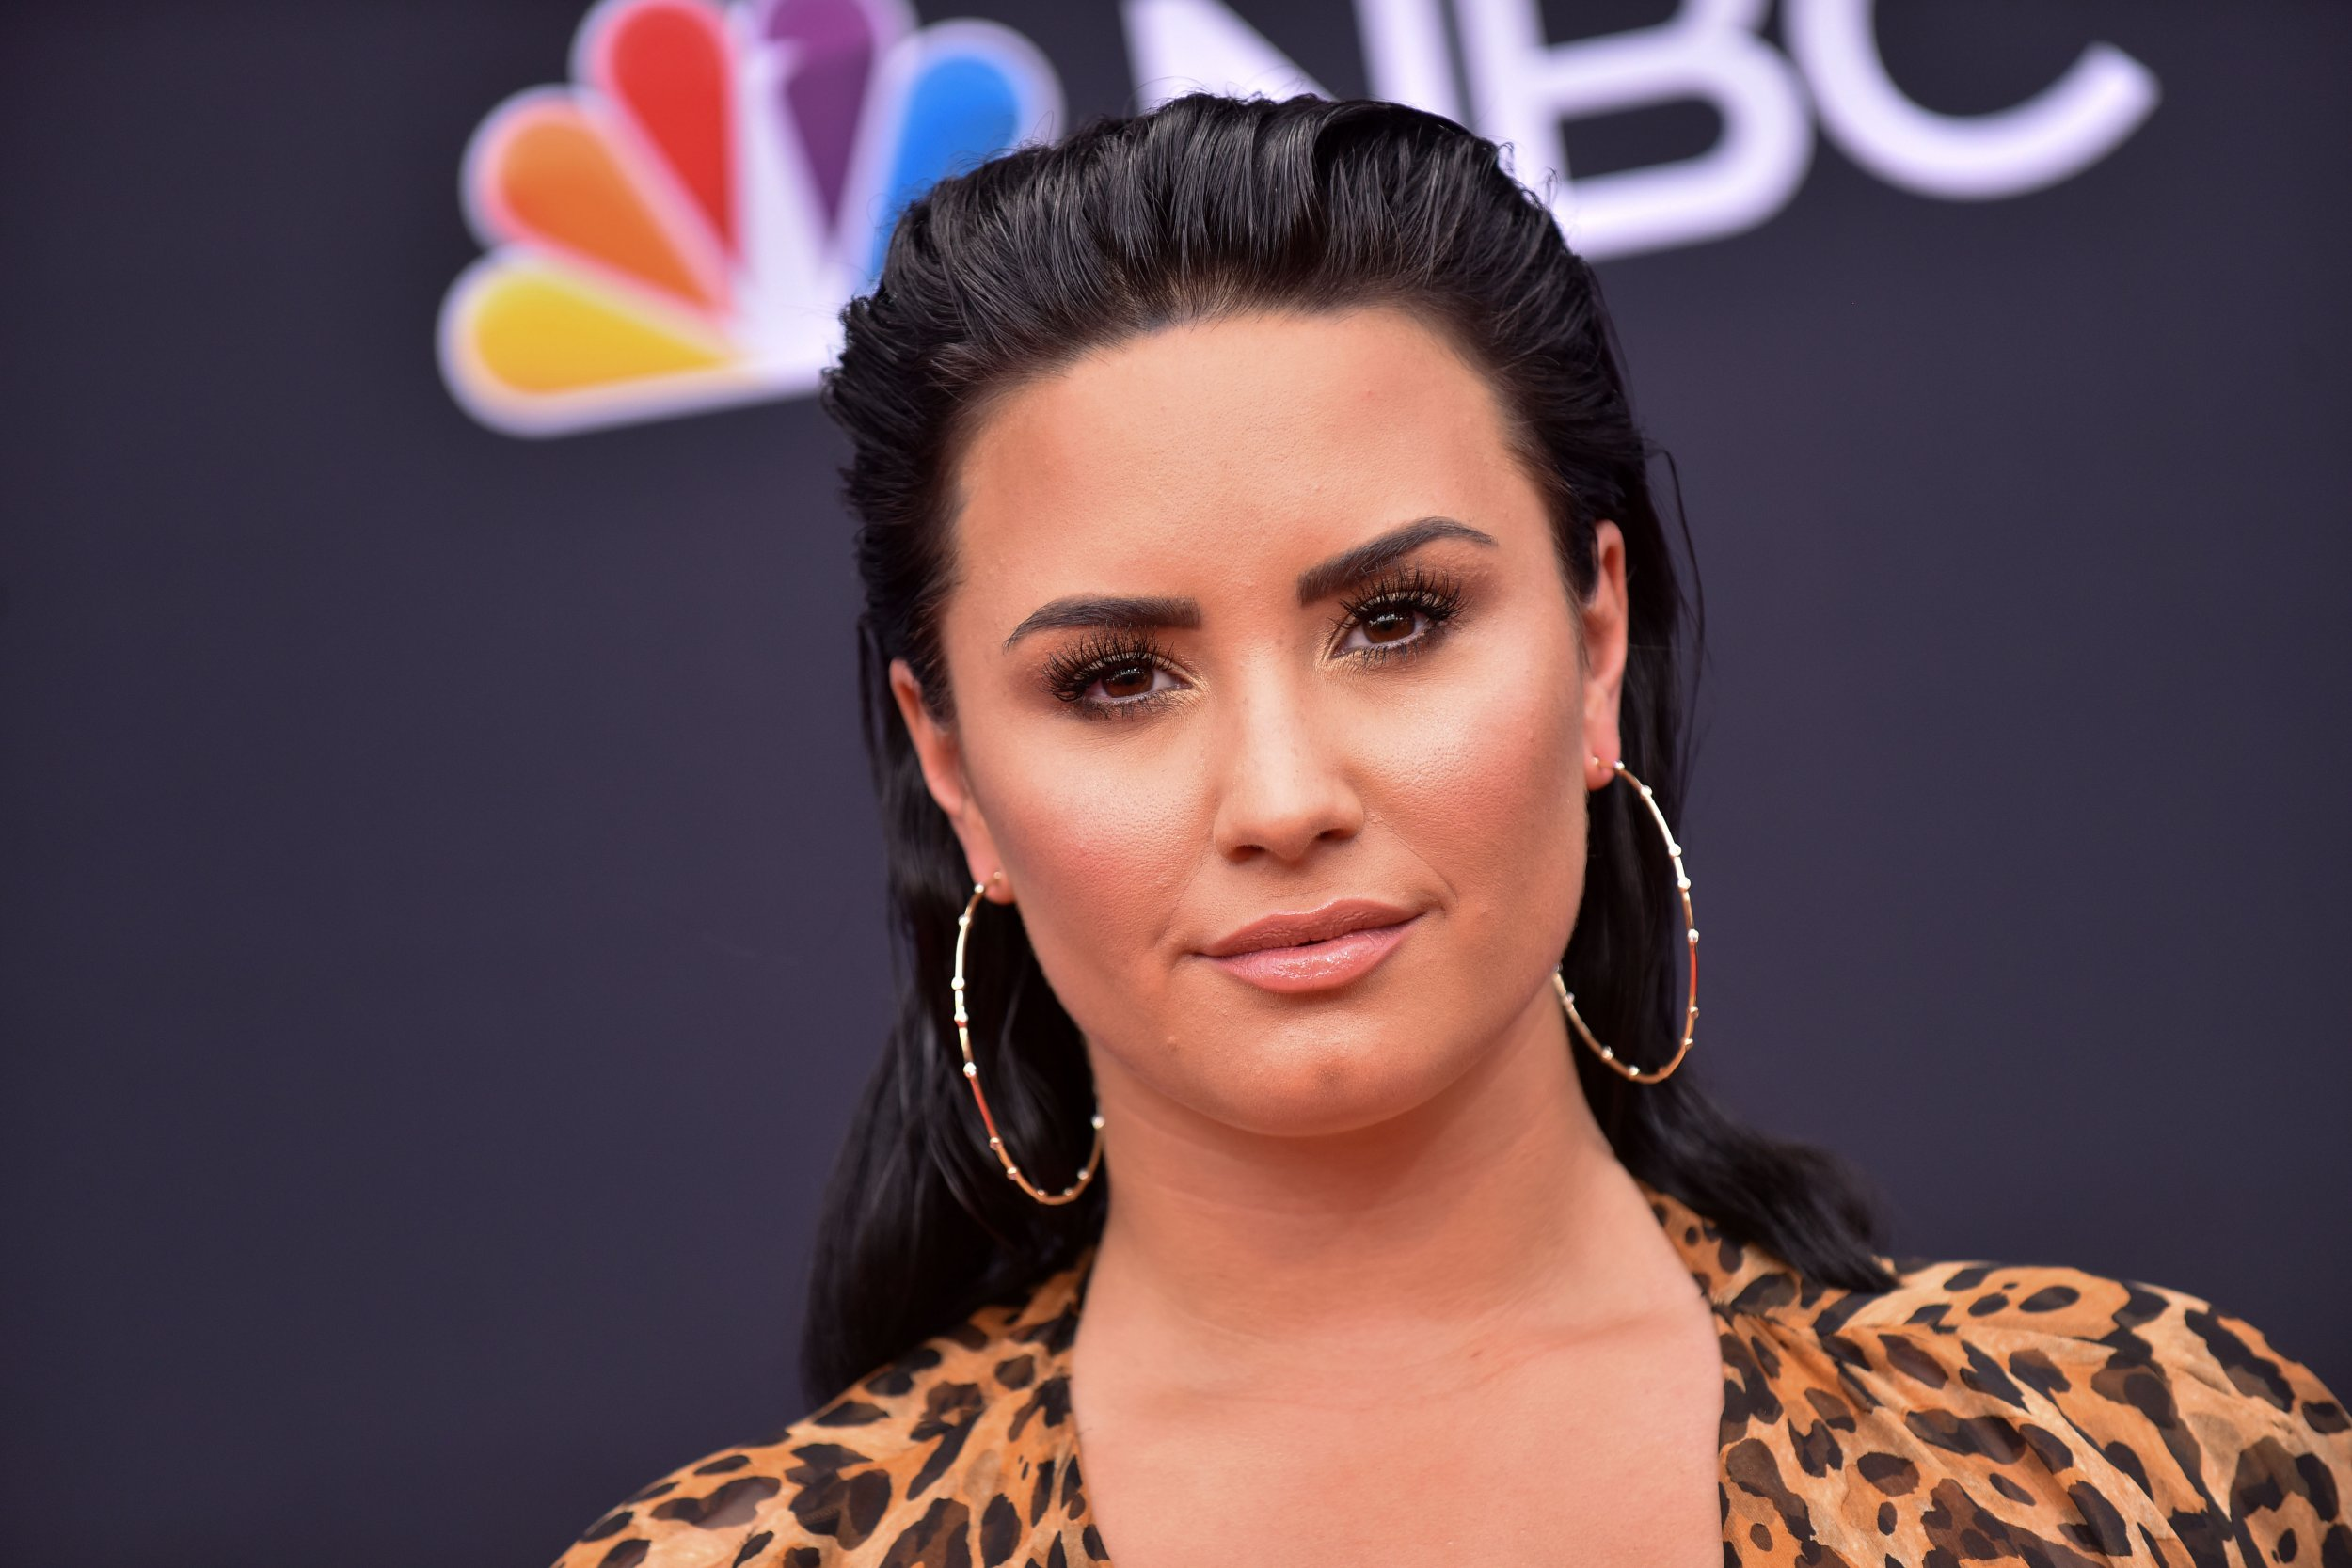 Demi lovato and trace cyruss twitter breakup